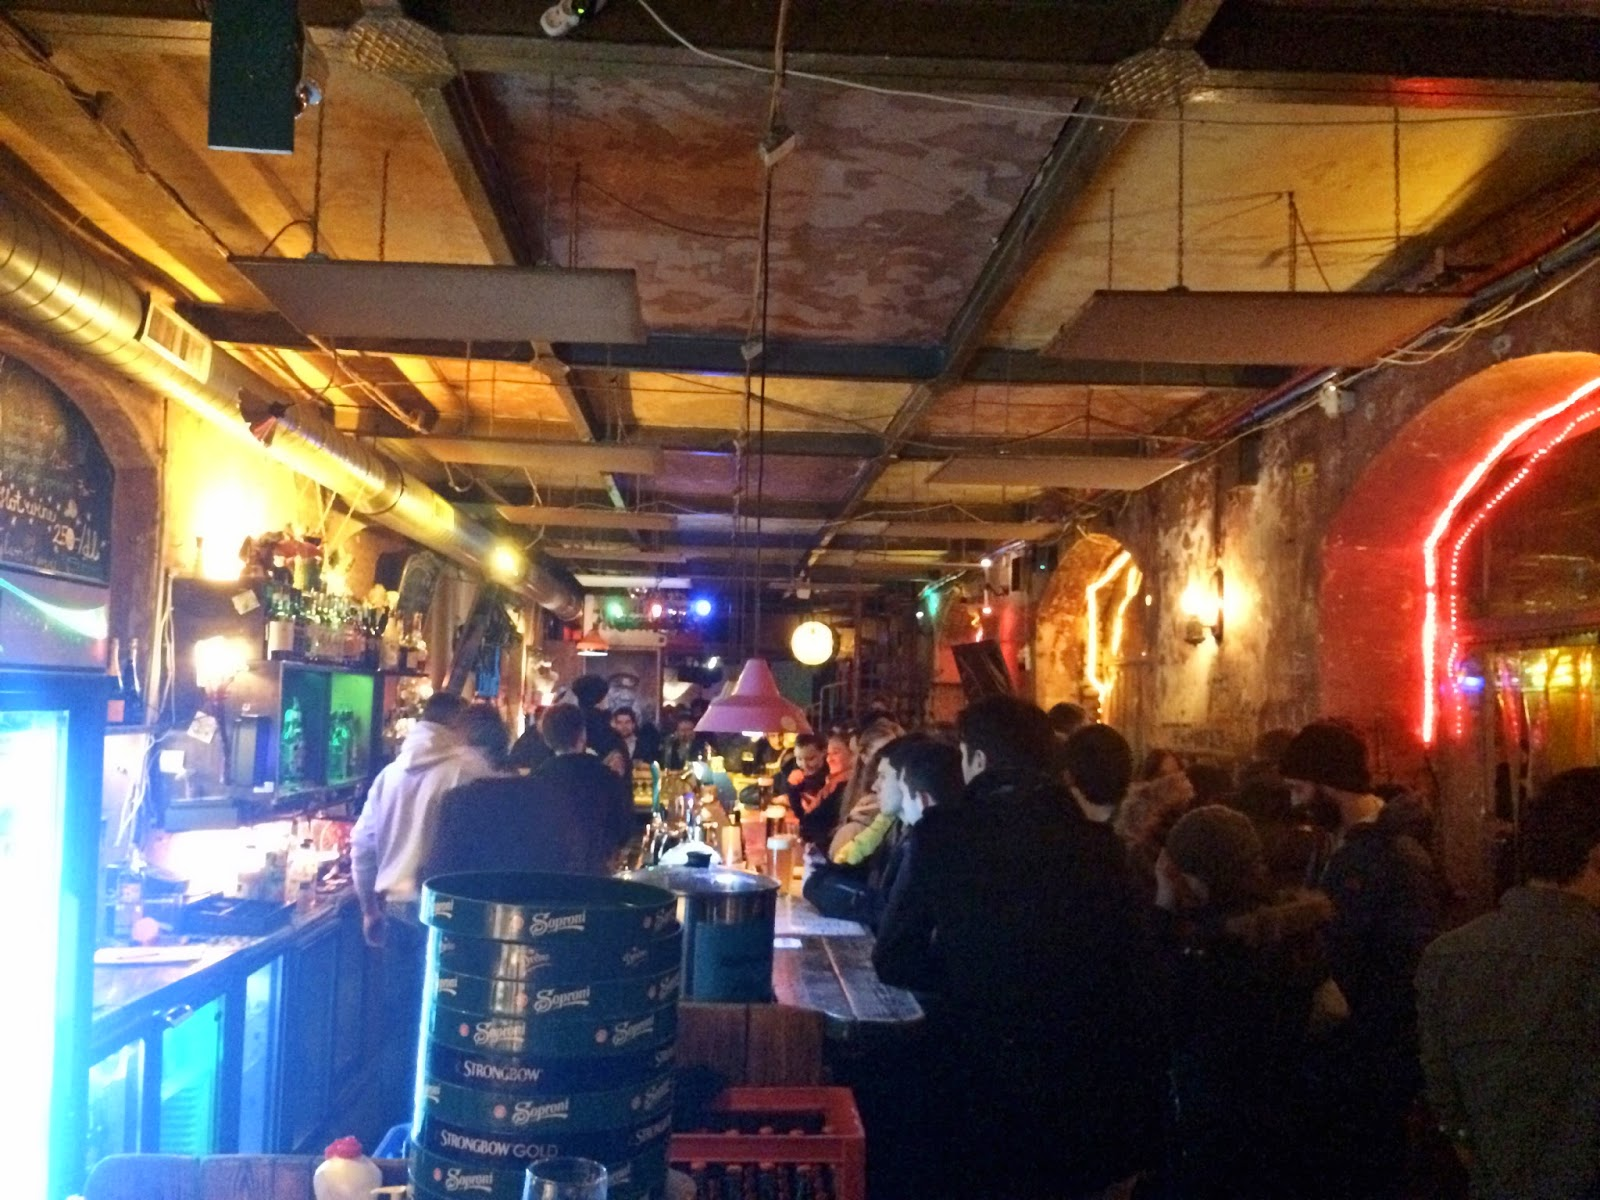 One of the bars inside Szimpla Kert